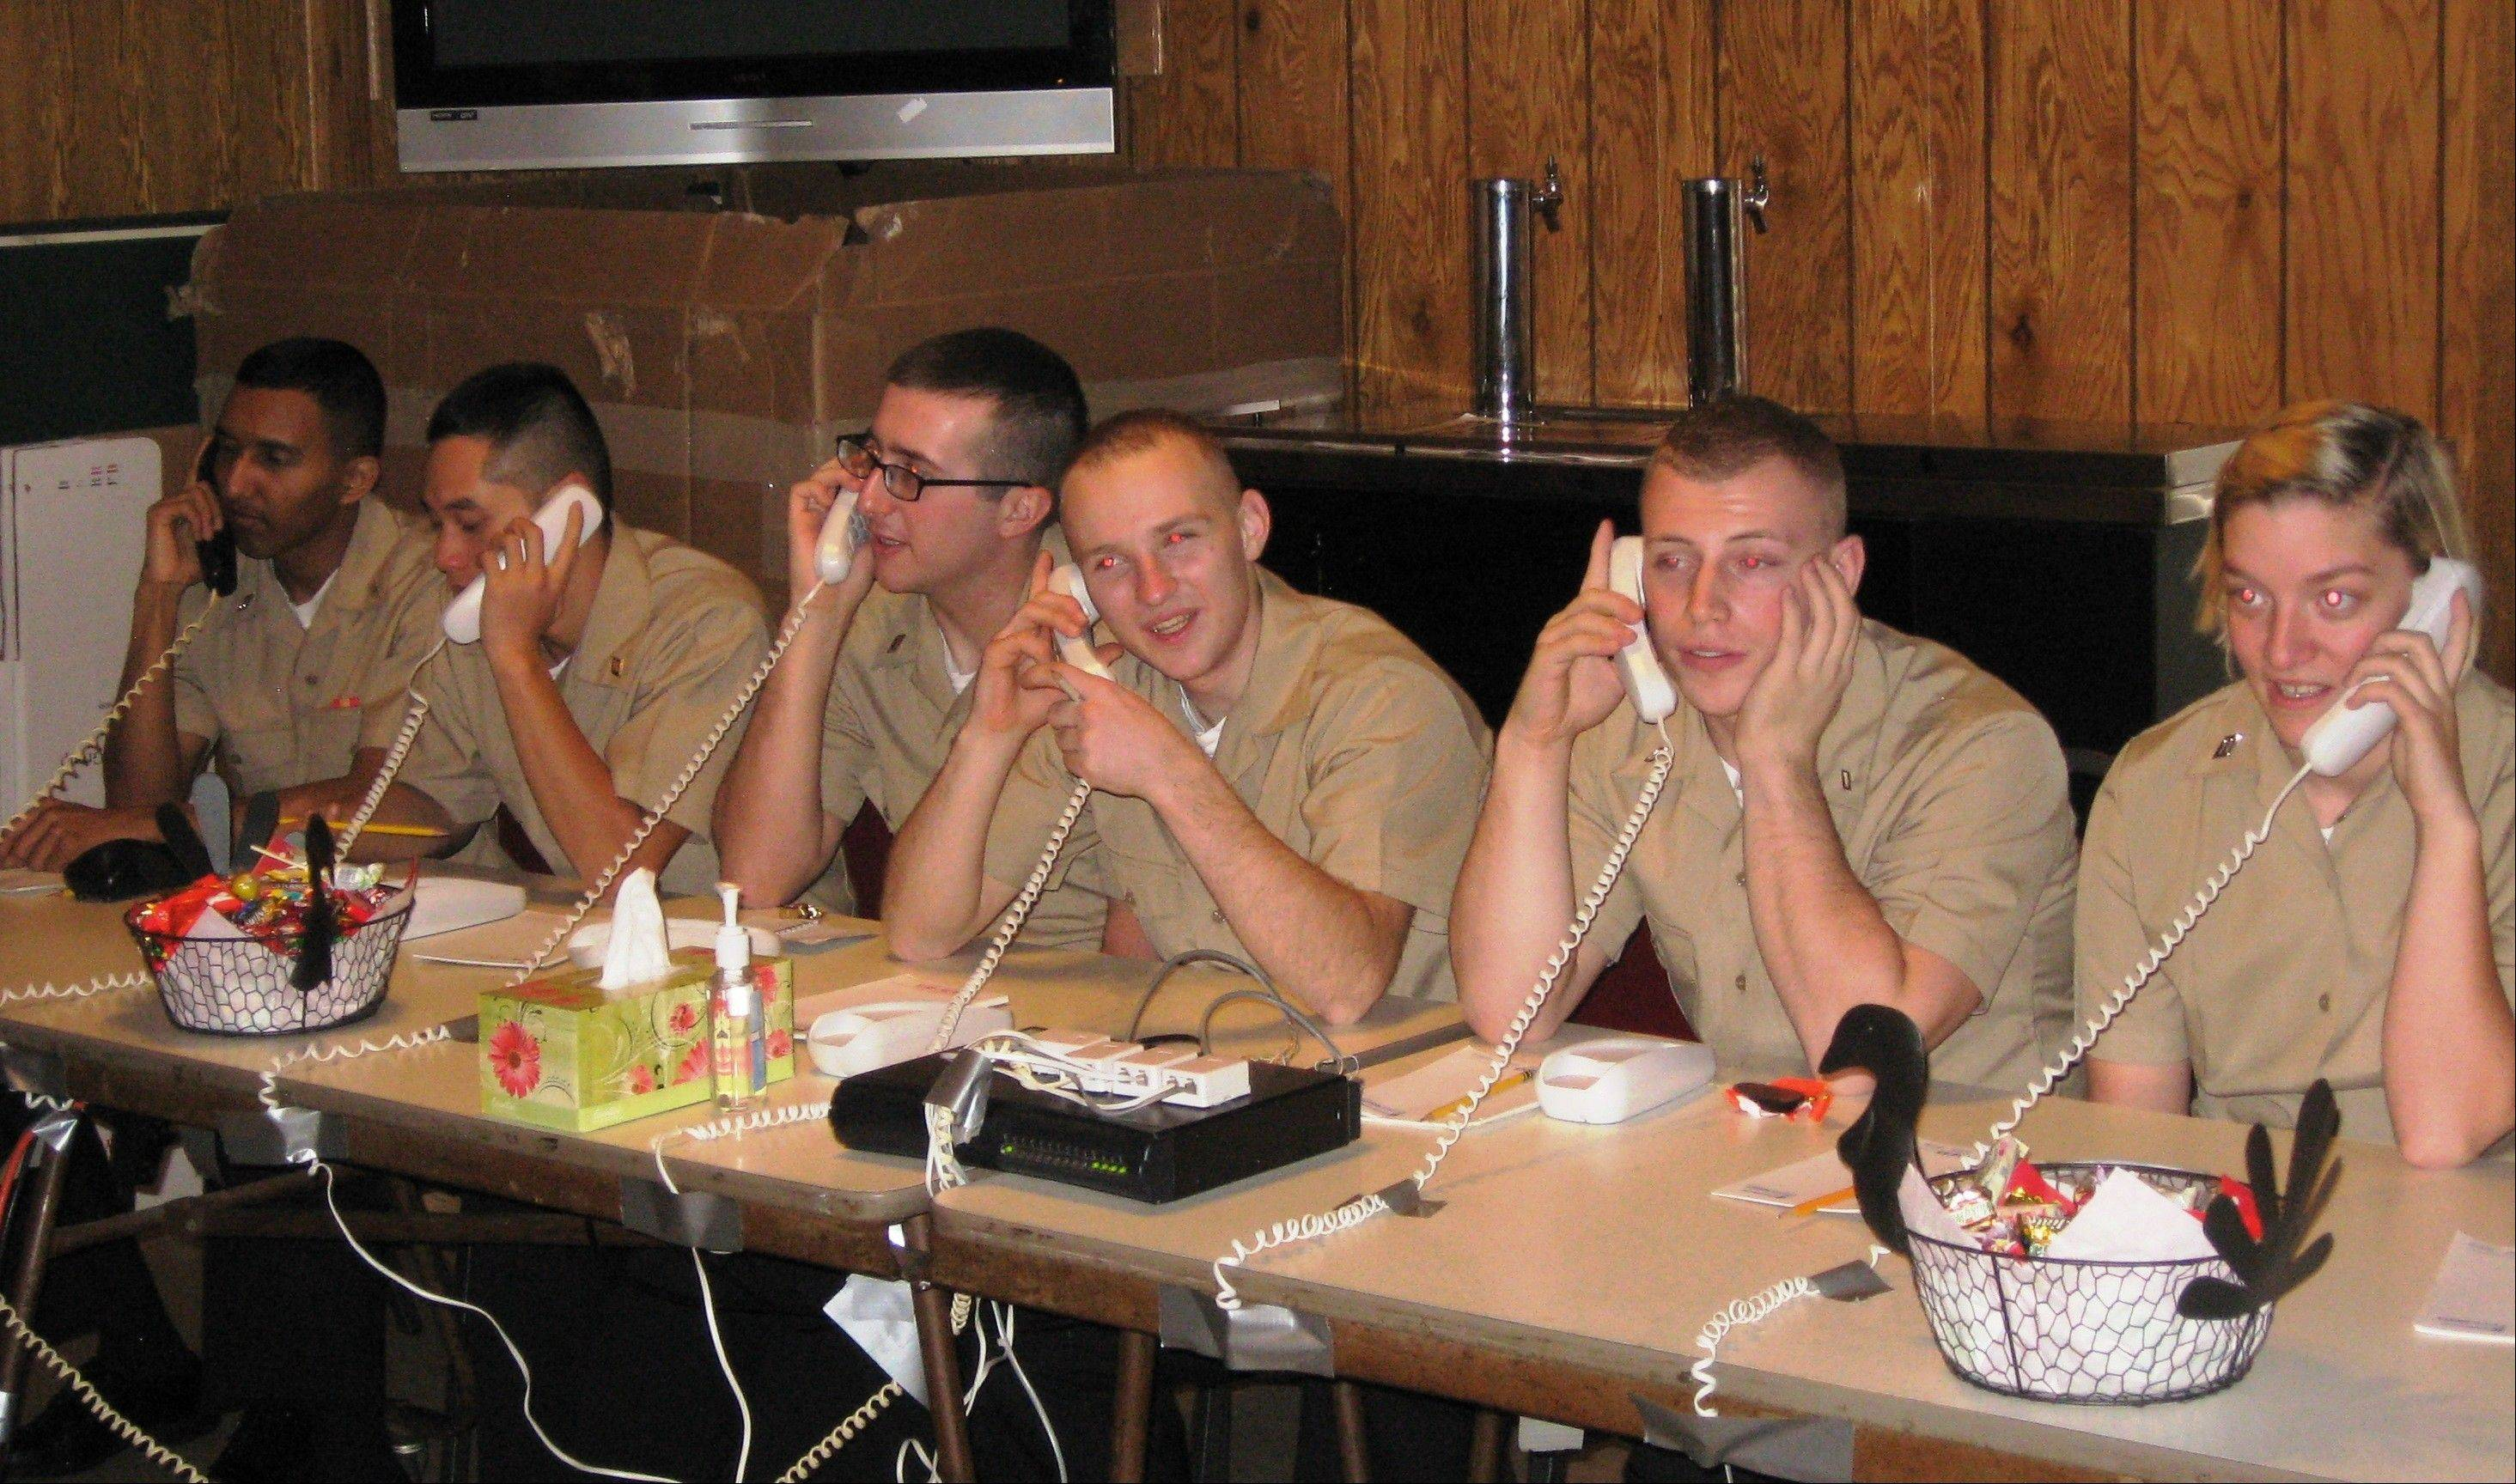 Naval recruits from Great Lakes Naval Training Center makes phone call home on Thanksgiving courtesy of Post 208 in Arlington Heights.